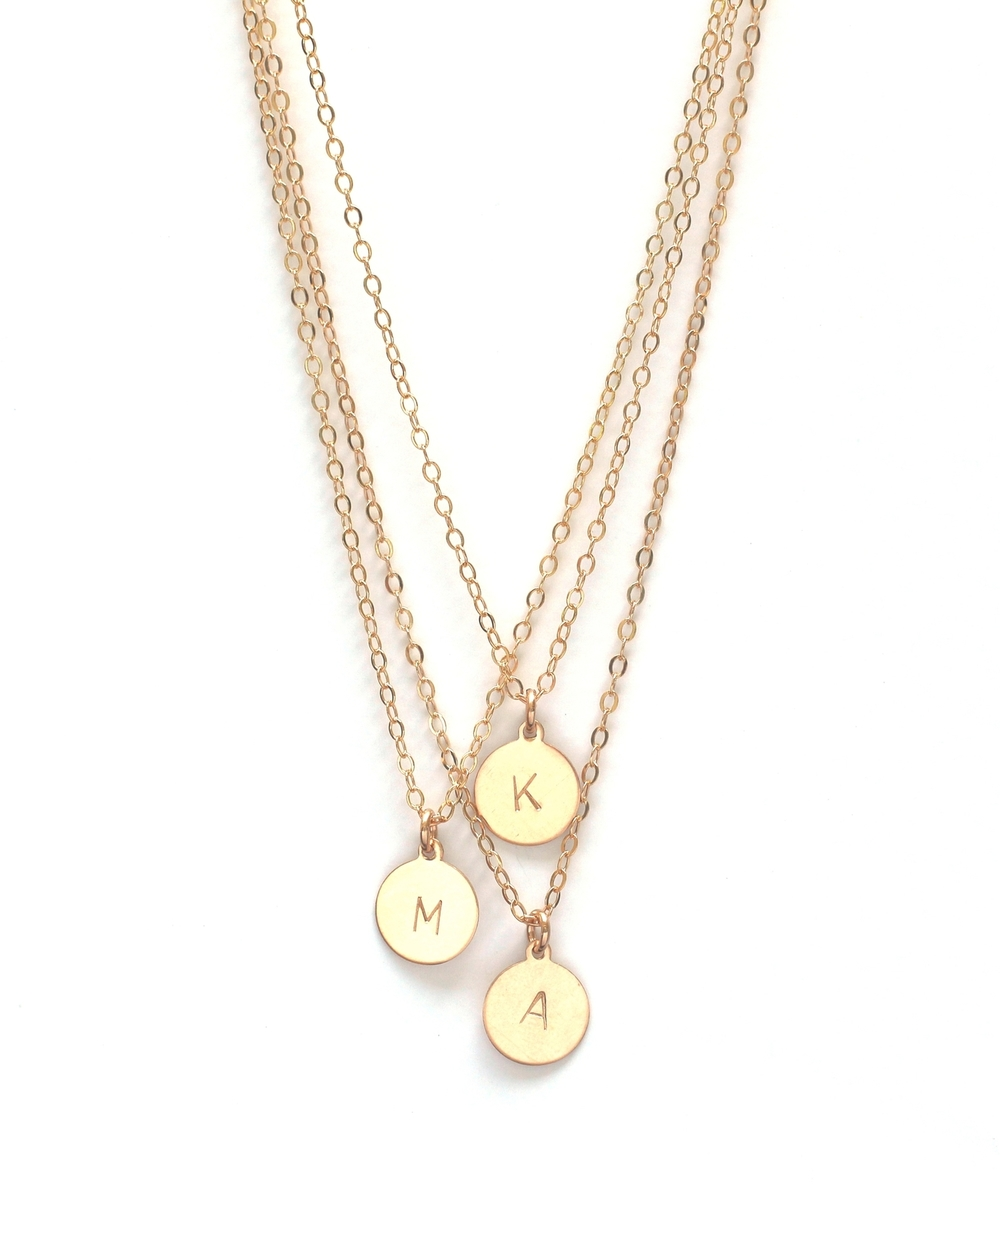 THE Initial Necklace $65